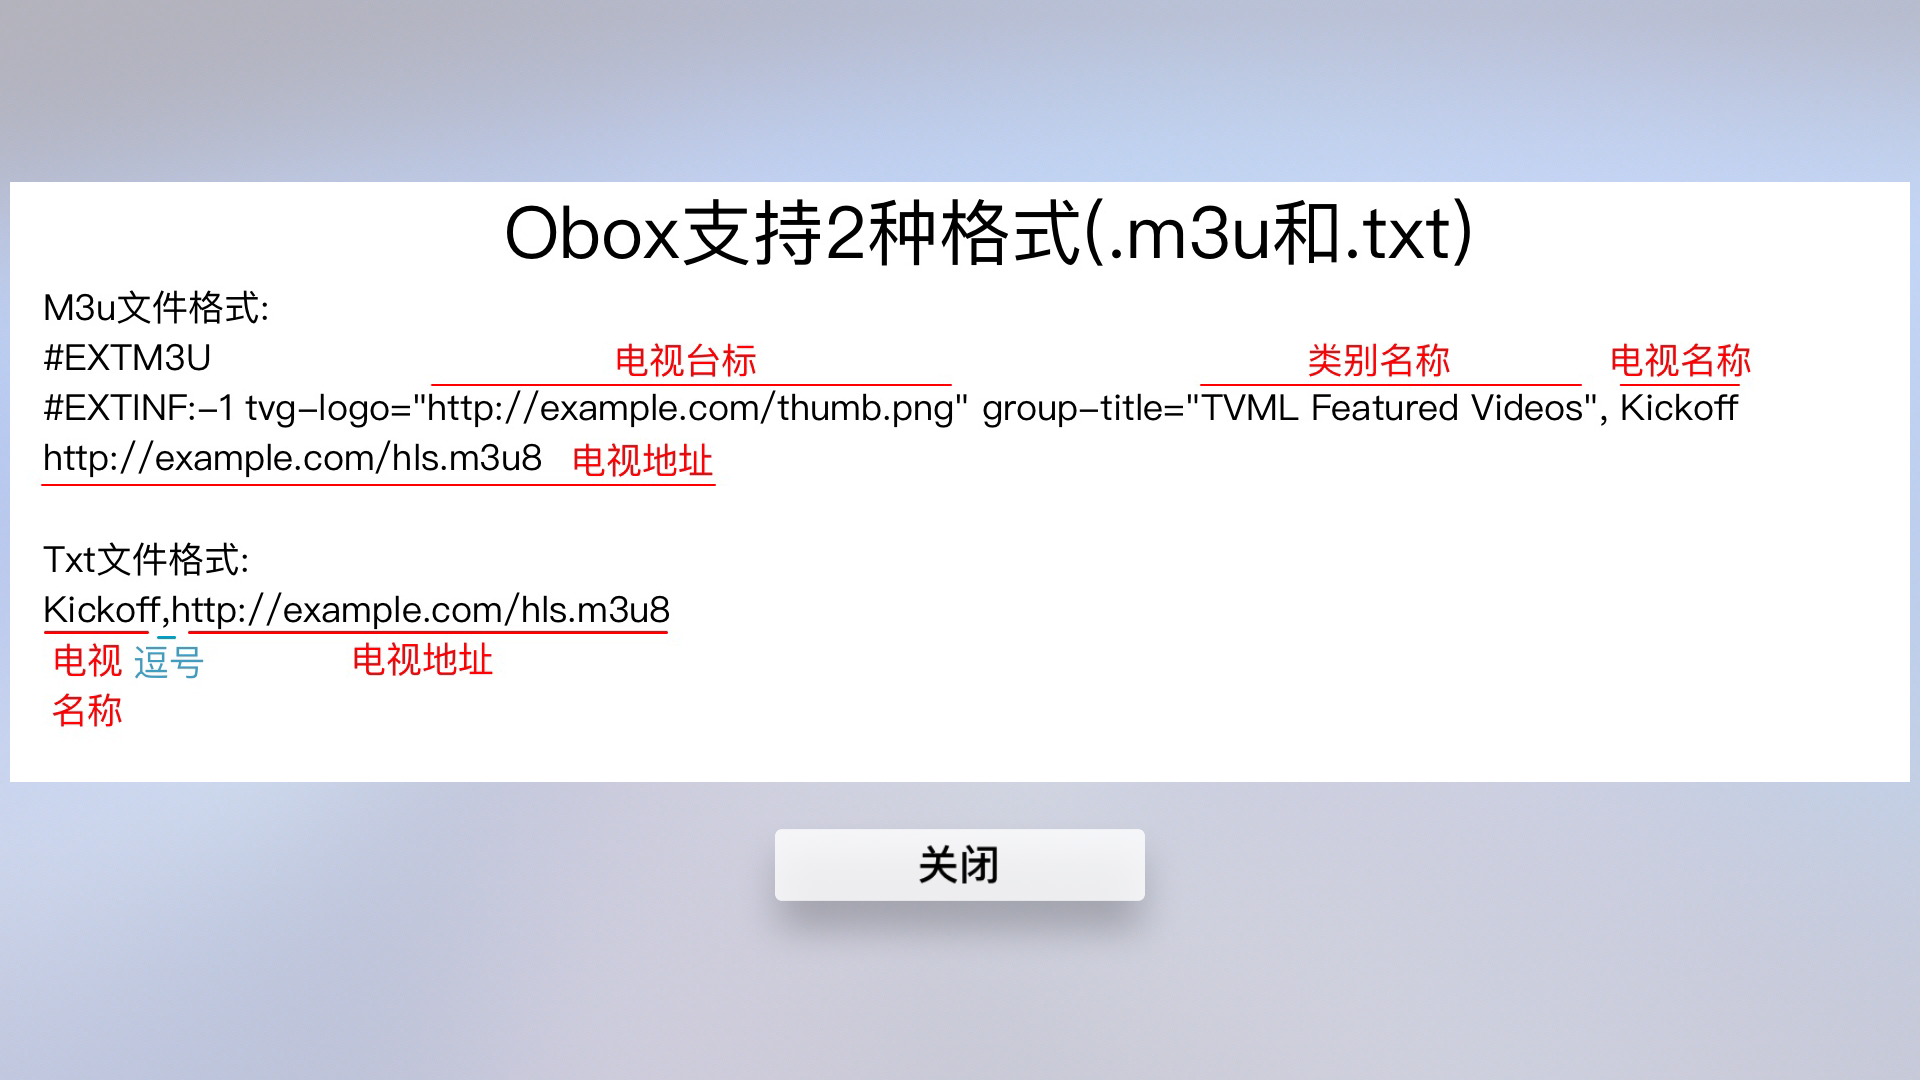 obox screenshot 7